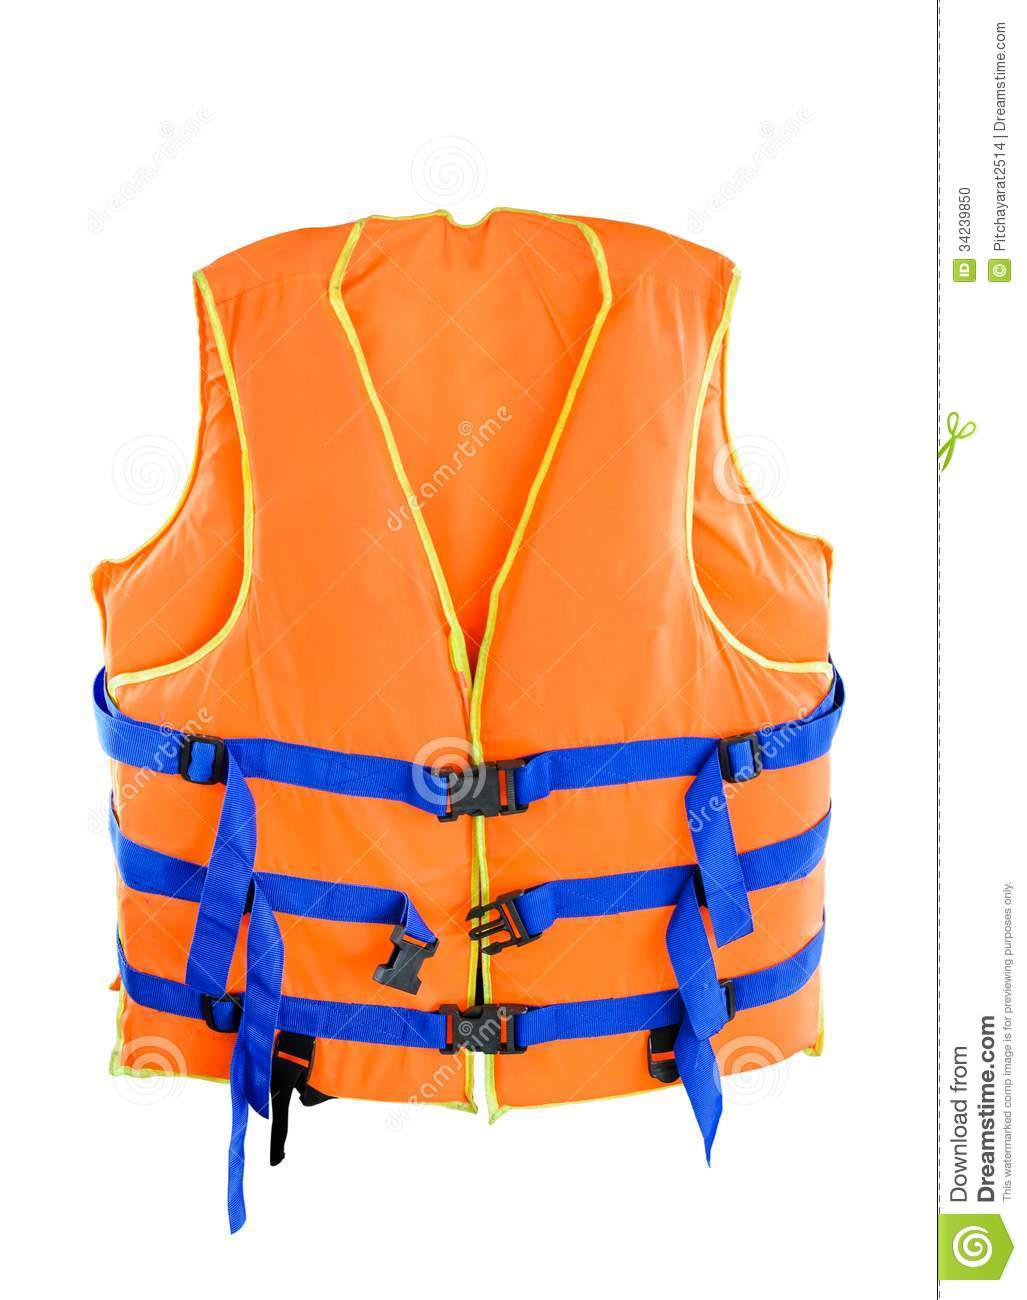 Life Jacket Stock Photo Image Of White Outfit Clothing 34239850